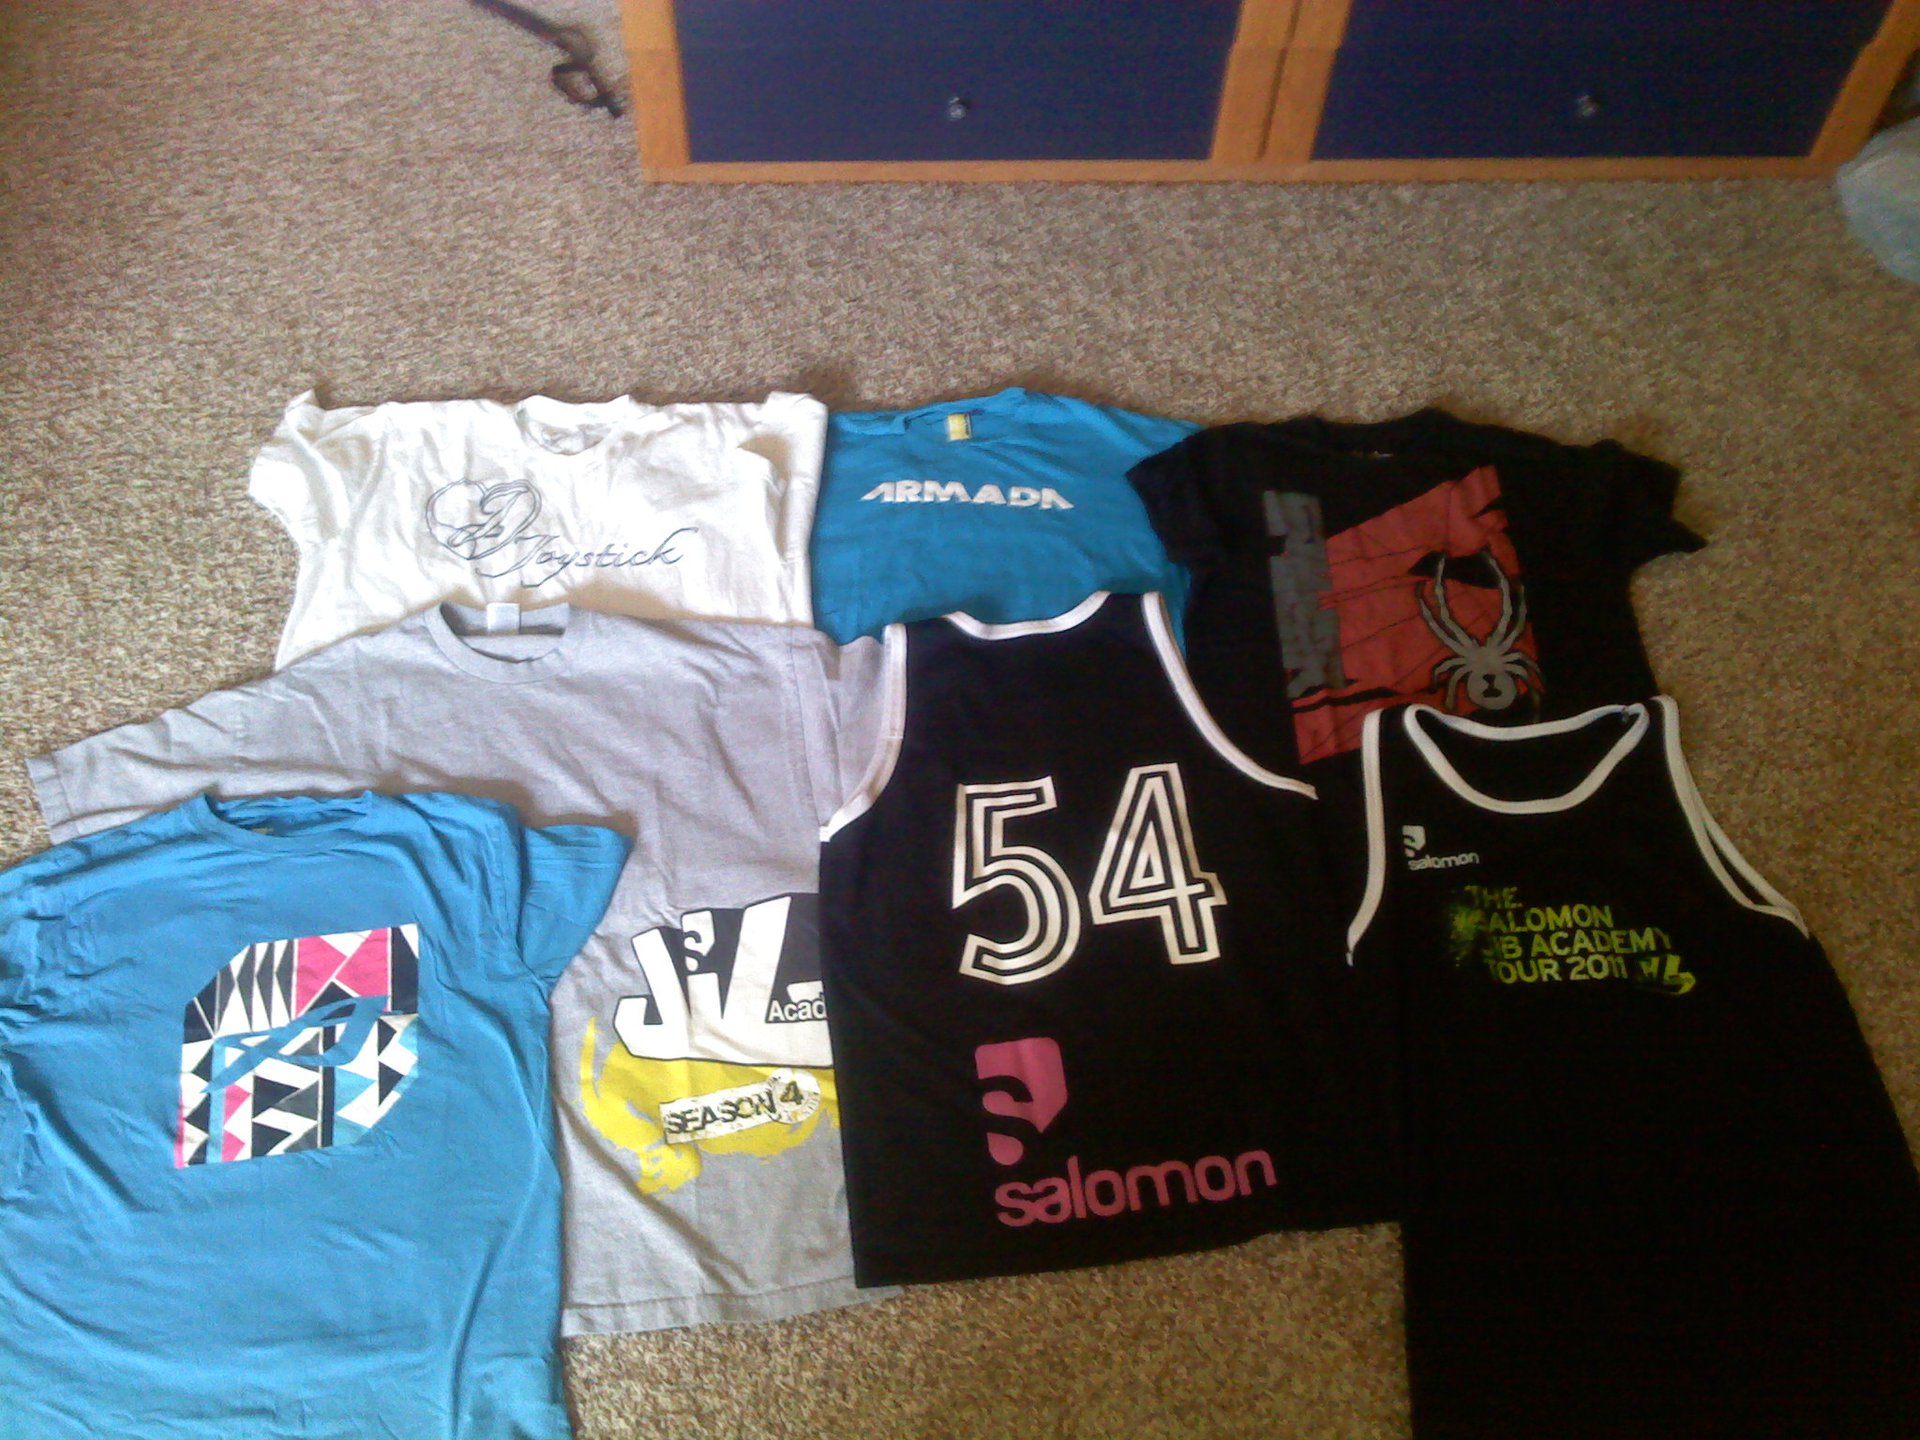 Shirts for sale